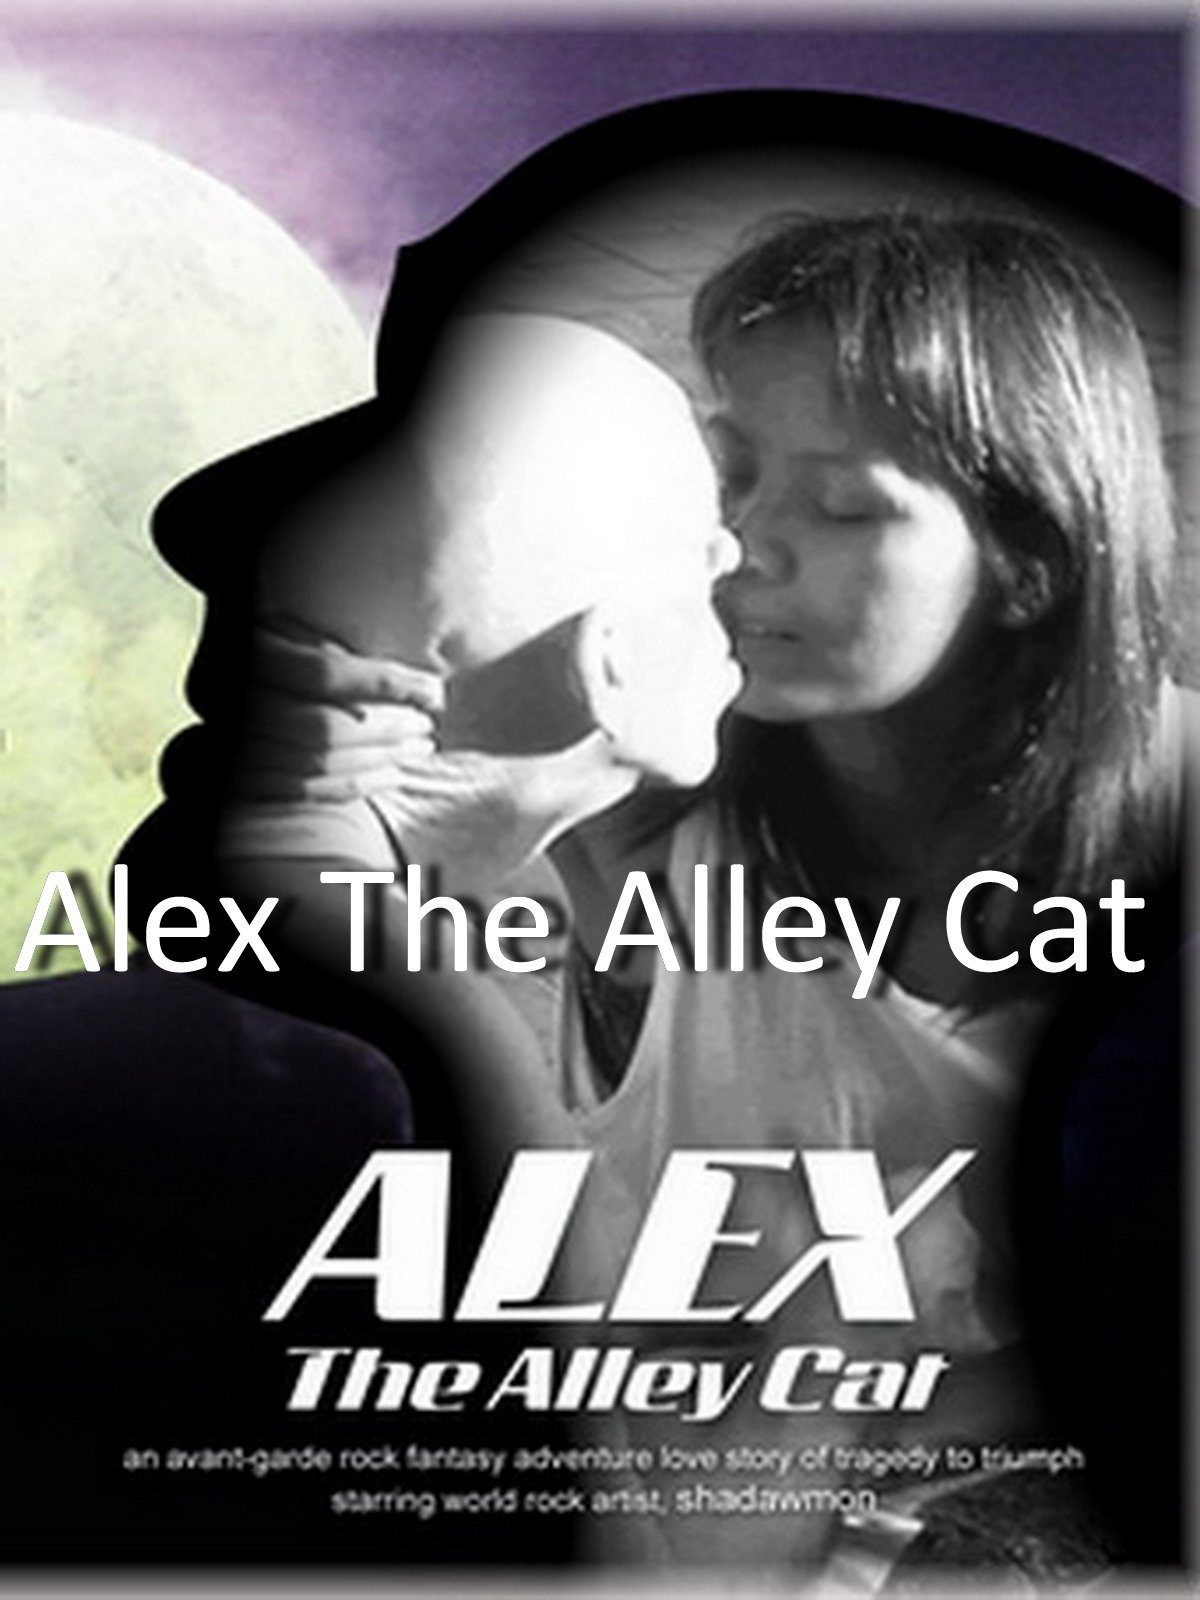 Alex The Alley Cat